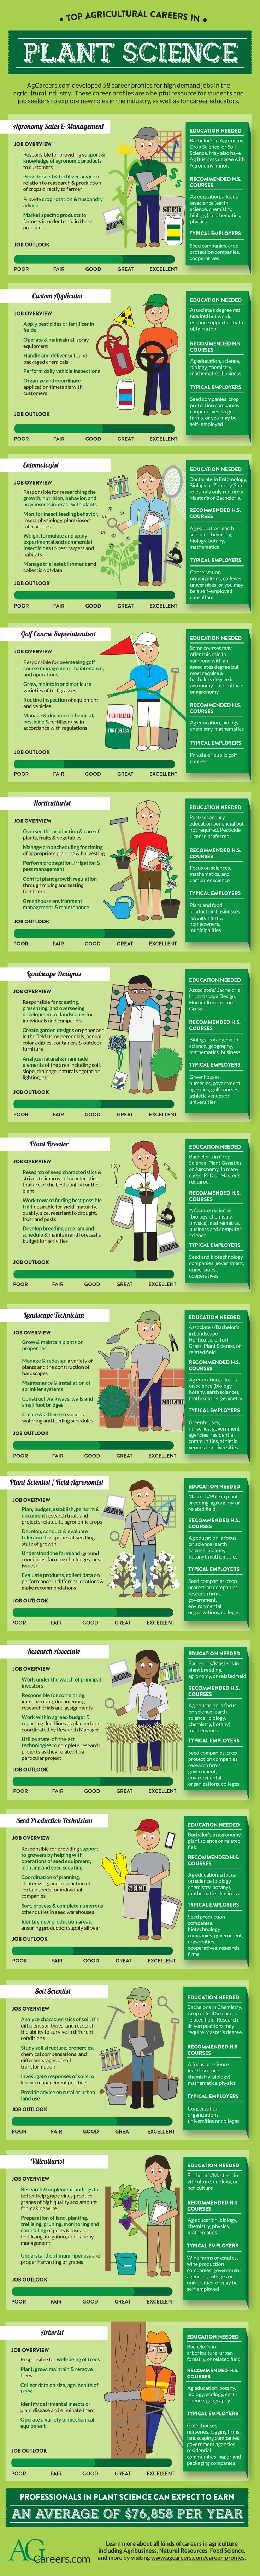 Top agricultural career in #PlantScience. Learn more on AgCareers.com: http://www.agcareers.com/career-profiles/